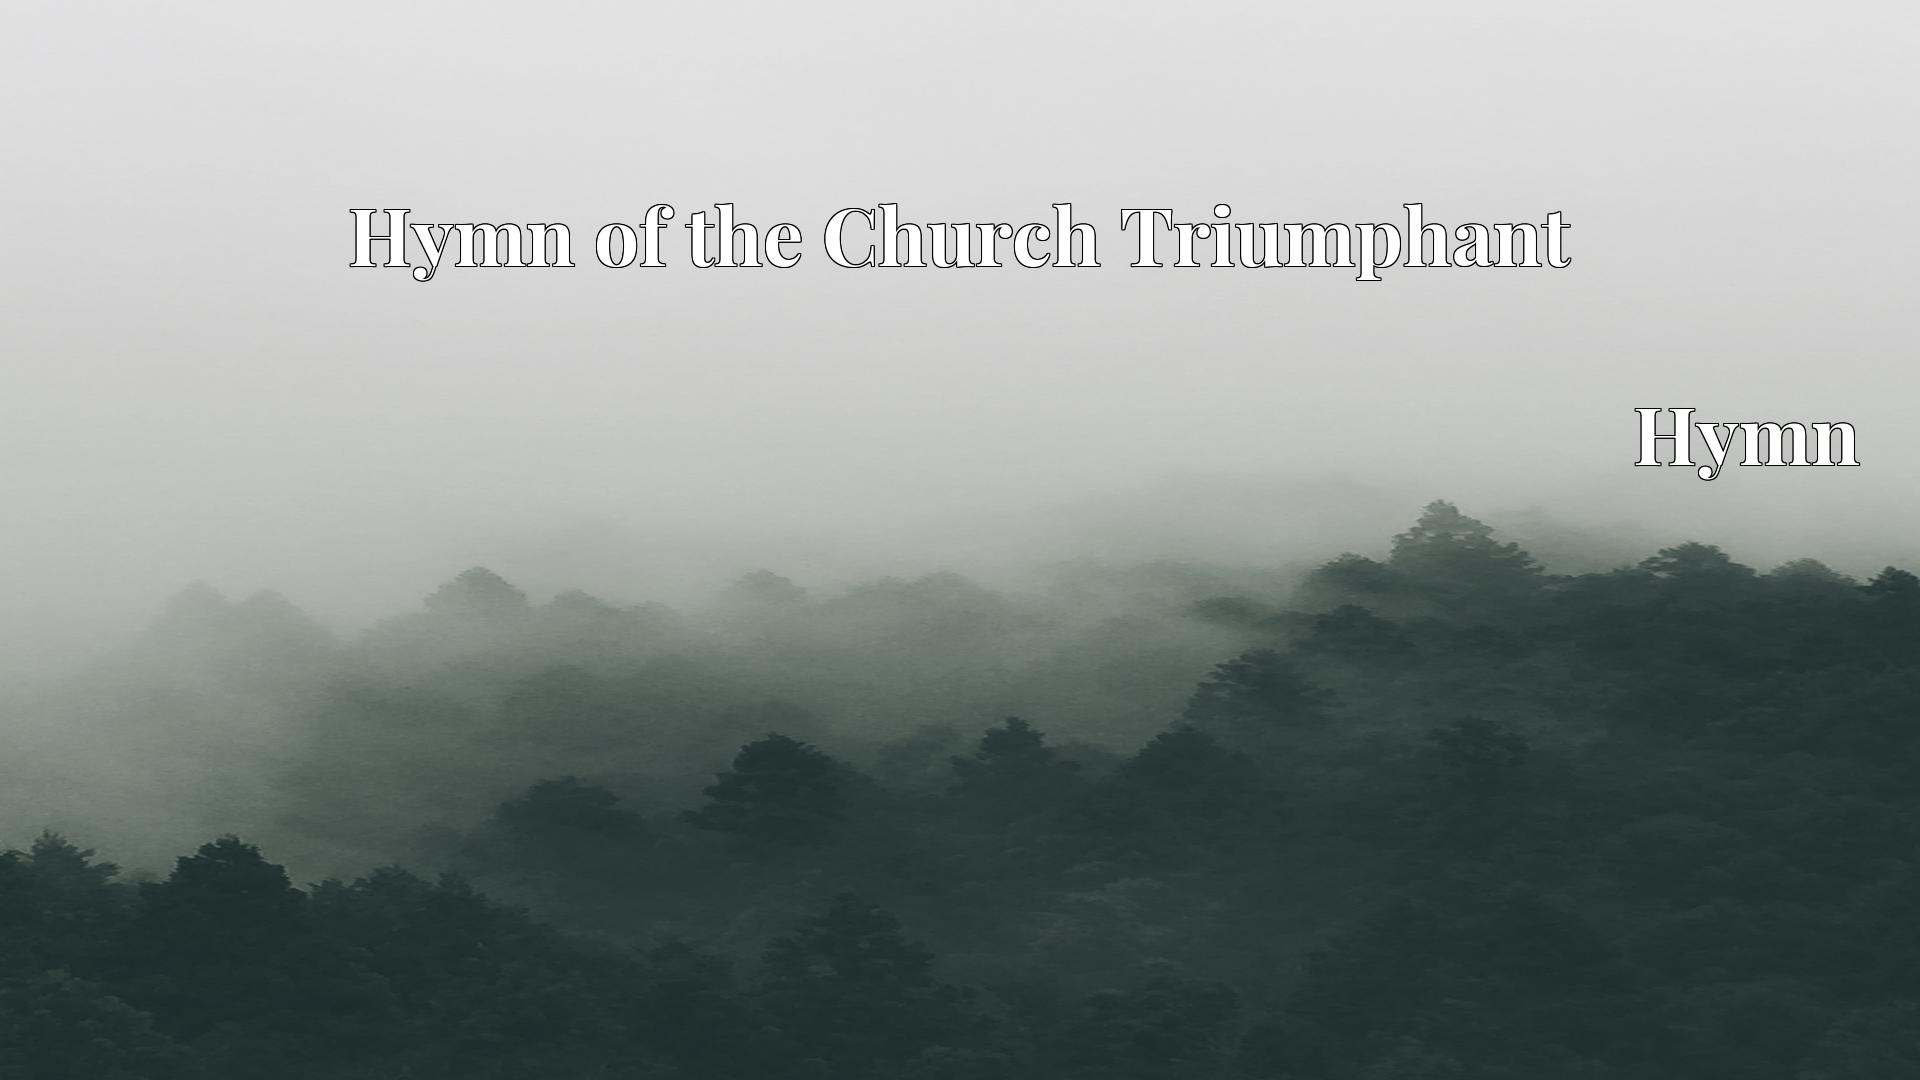 Hymn of the Church Triumphant - Hymn